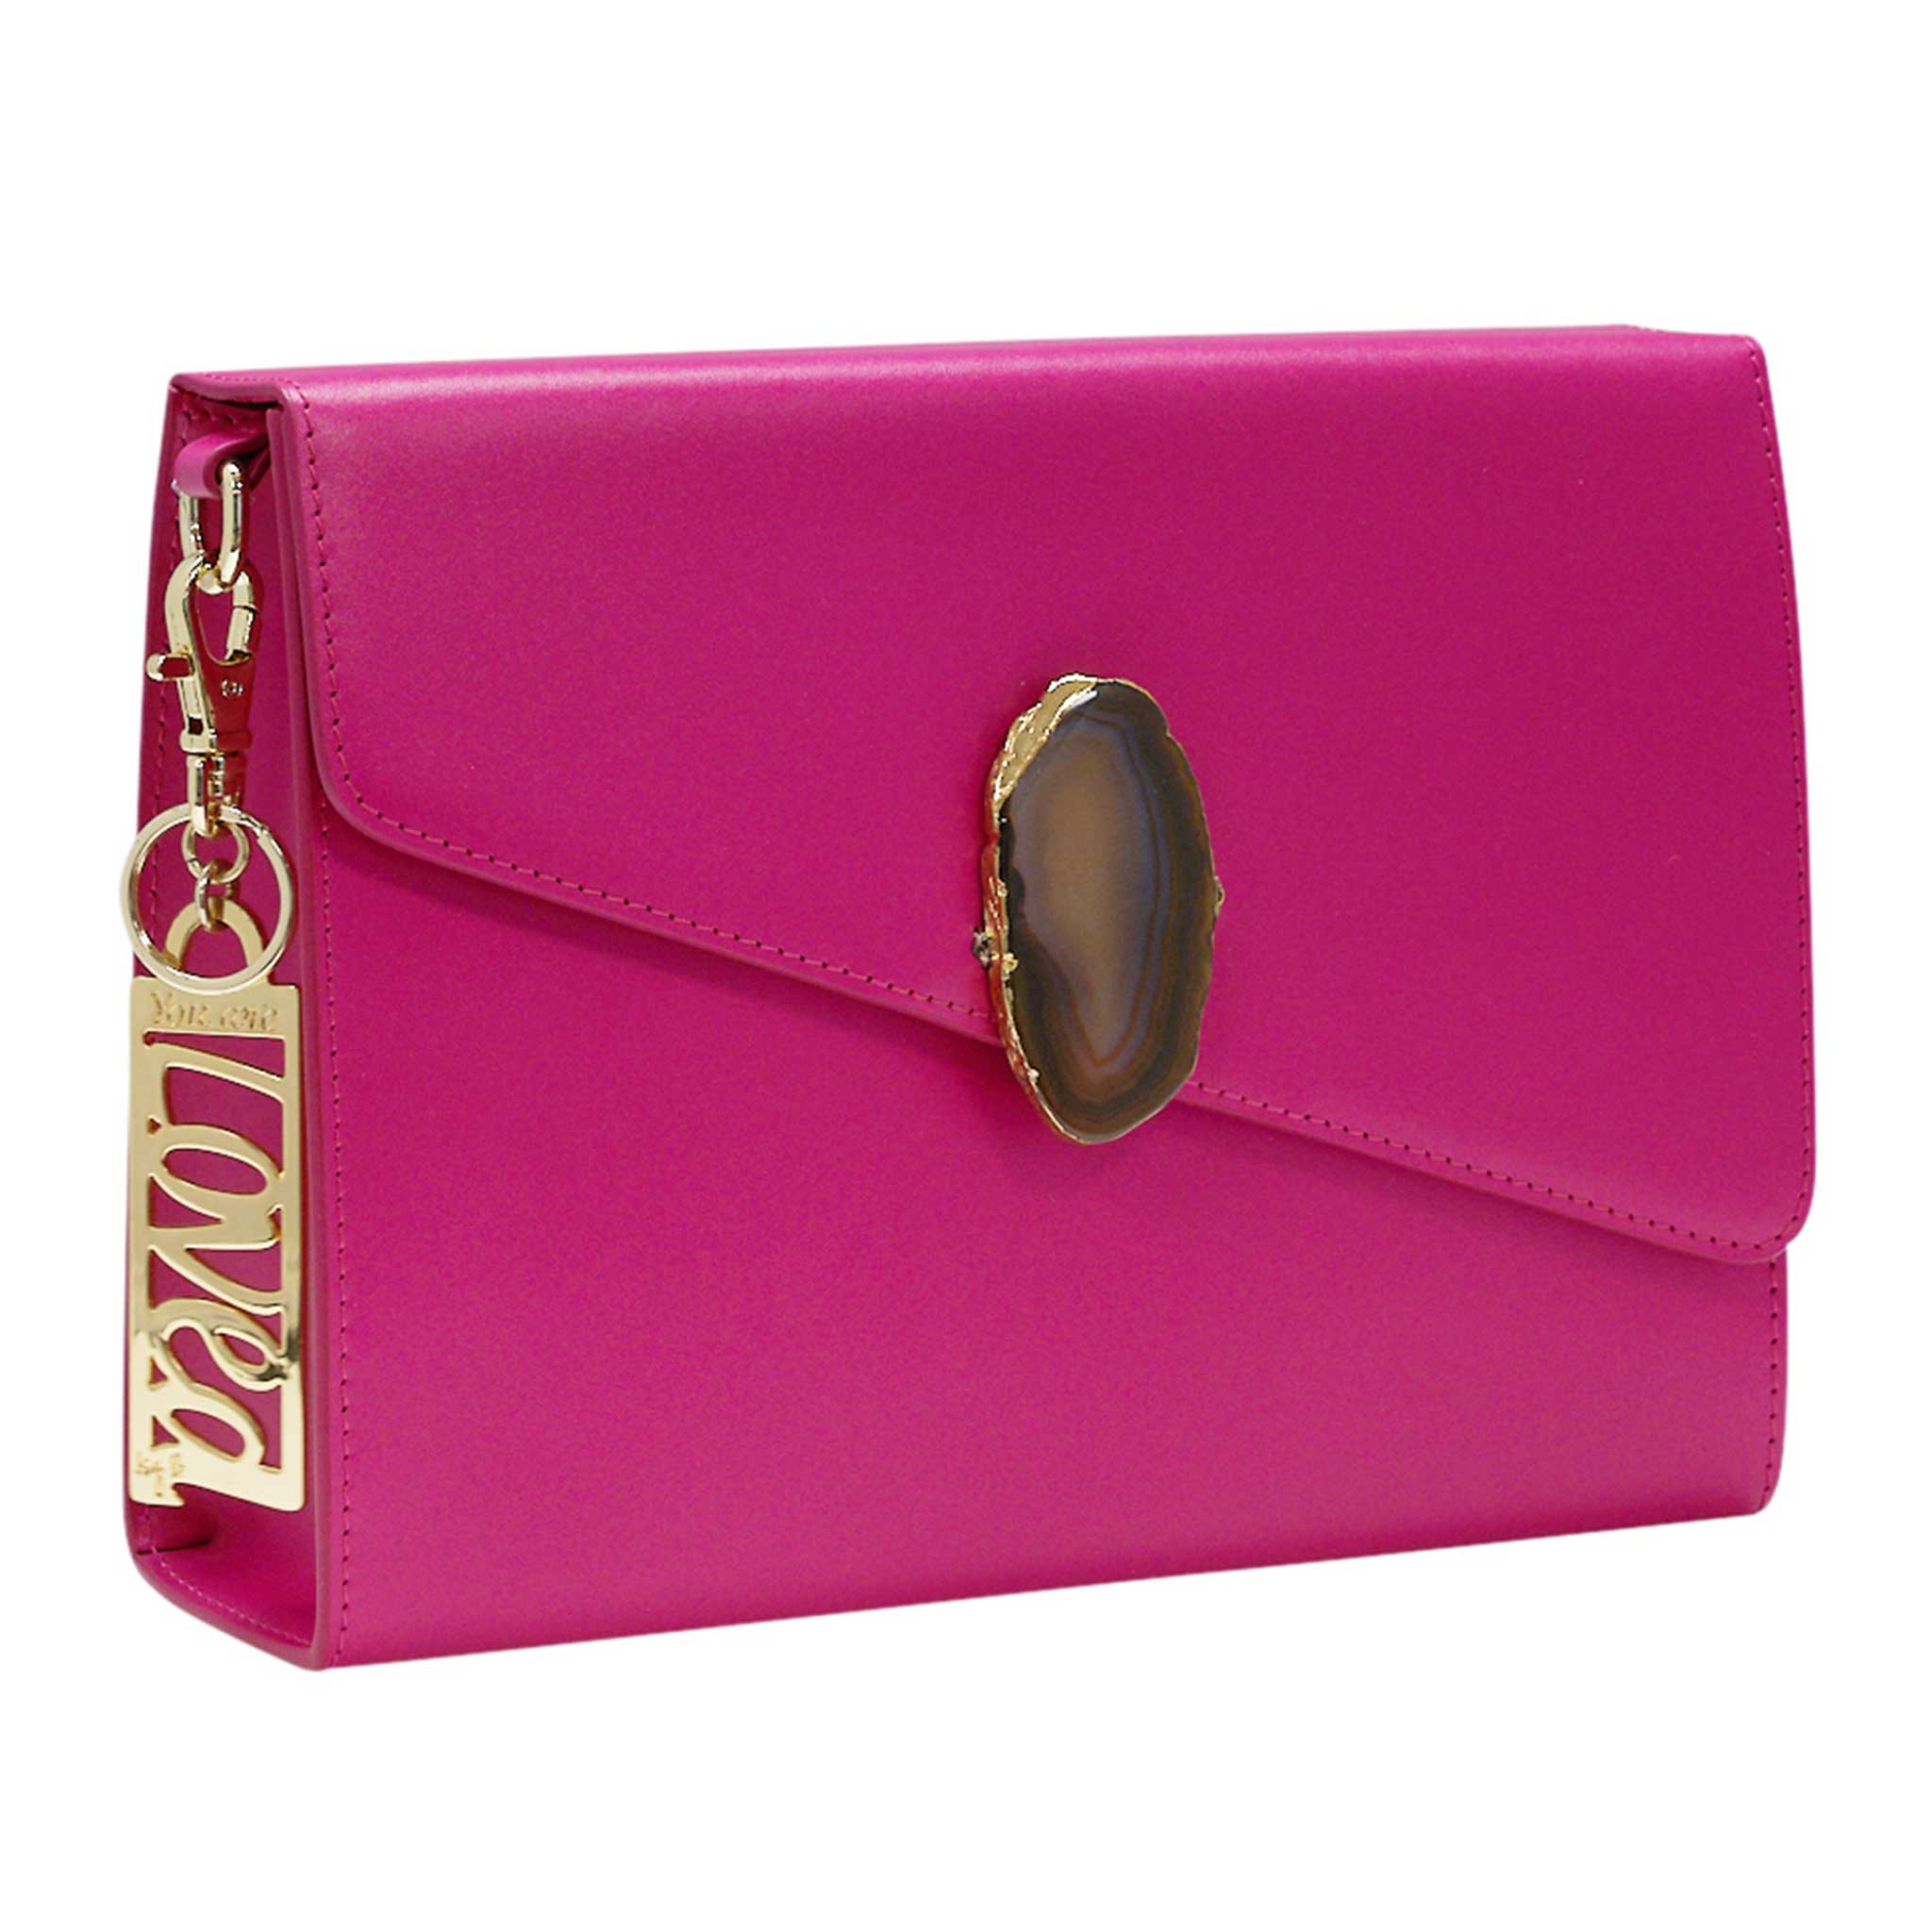 LOVED BAG - PINK RUBY LEATHER WITH BROWN AGATE - 1.01.004.017